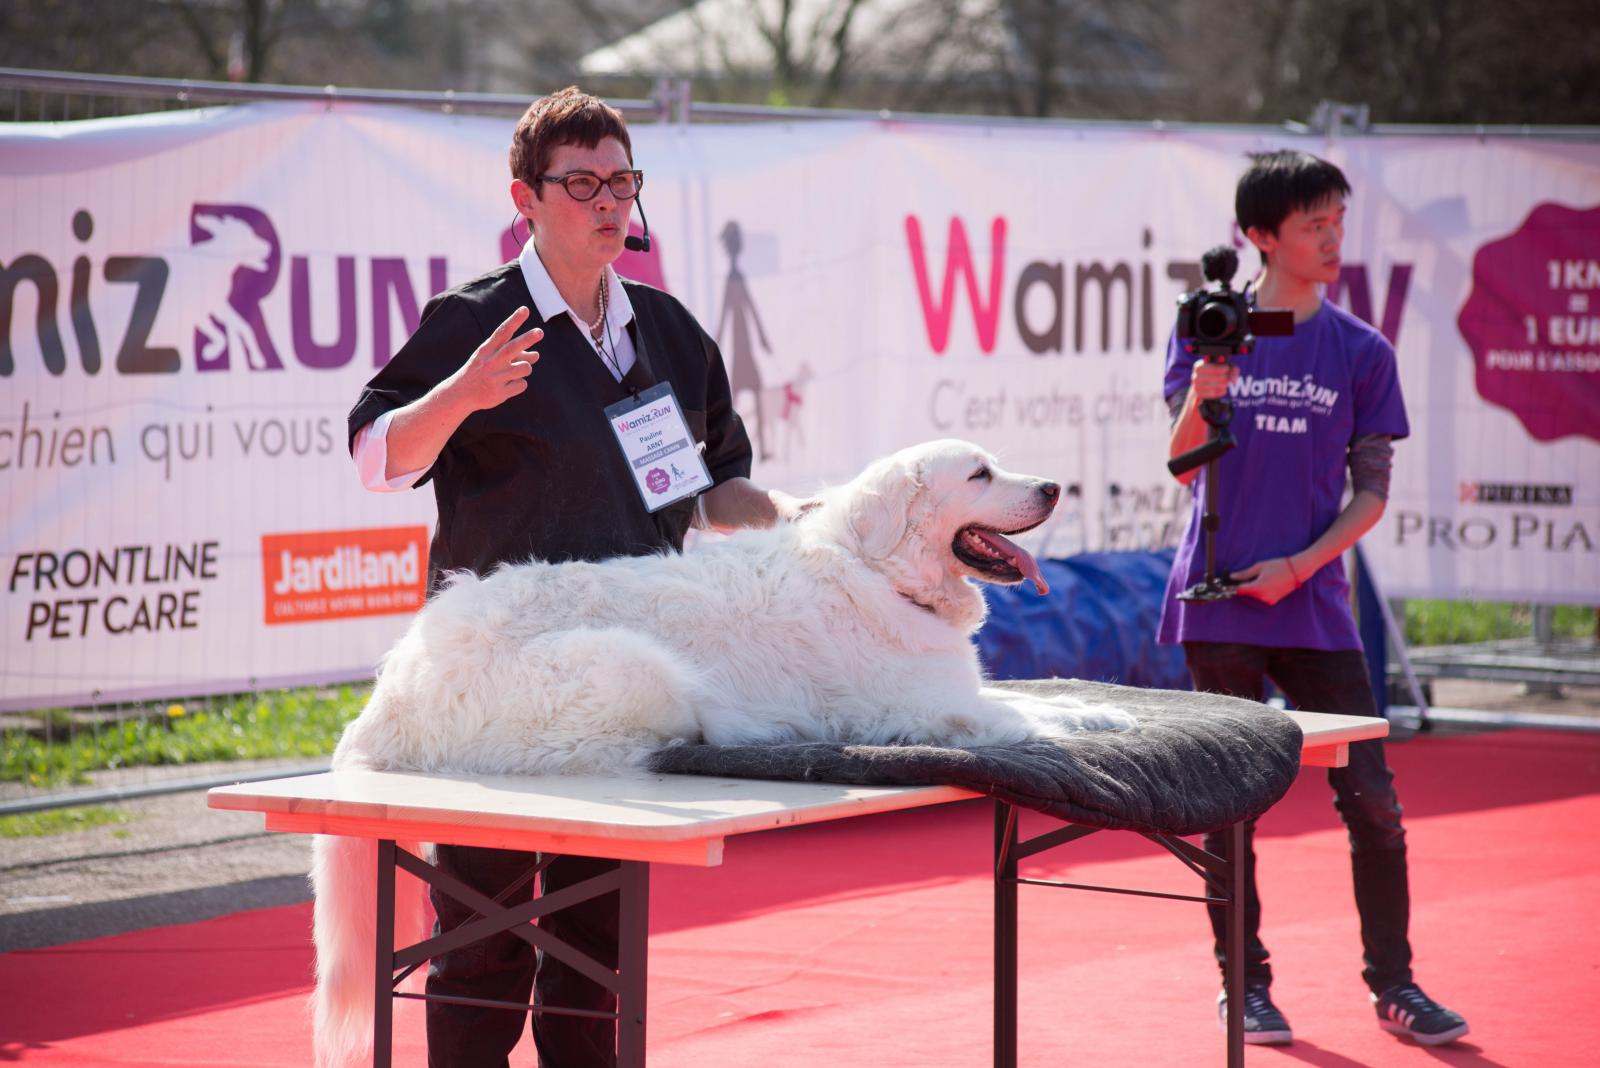 démonstration massages canins wamiz run